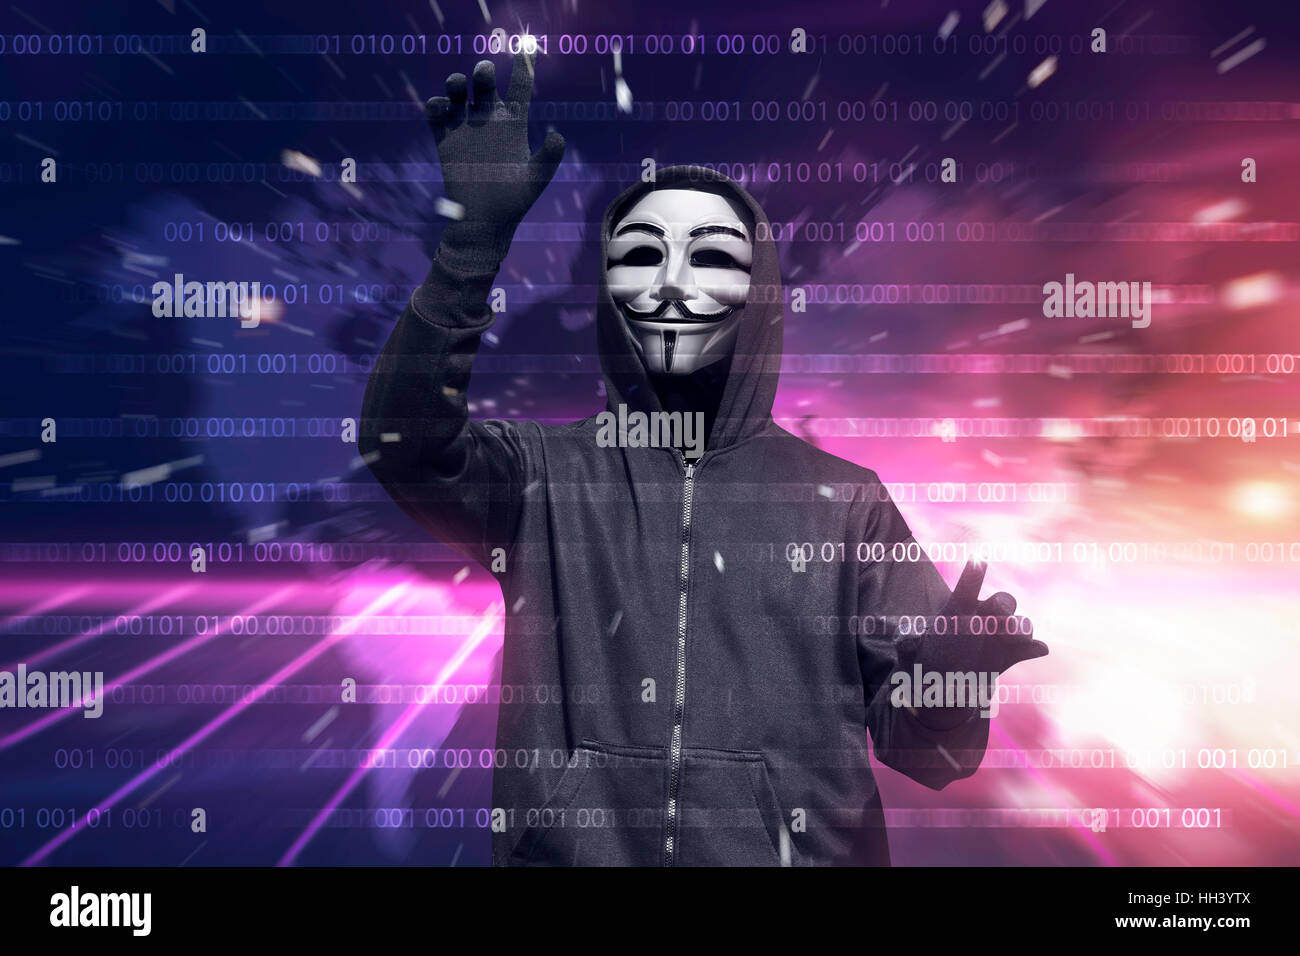 Hooded hacker with mask hacking binary system security code on the virtual screen - Stock Image